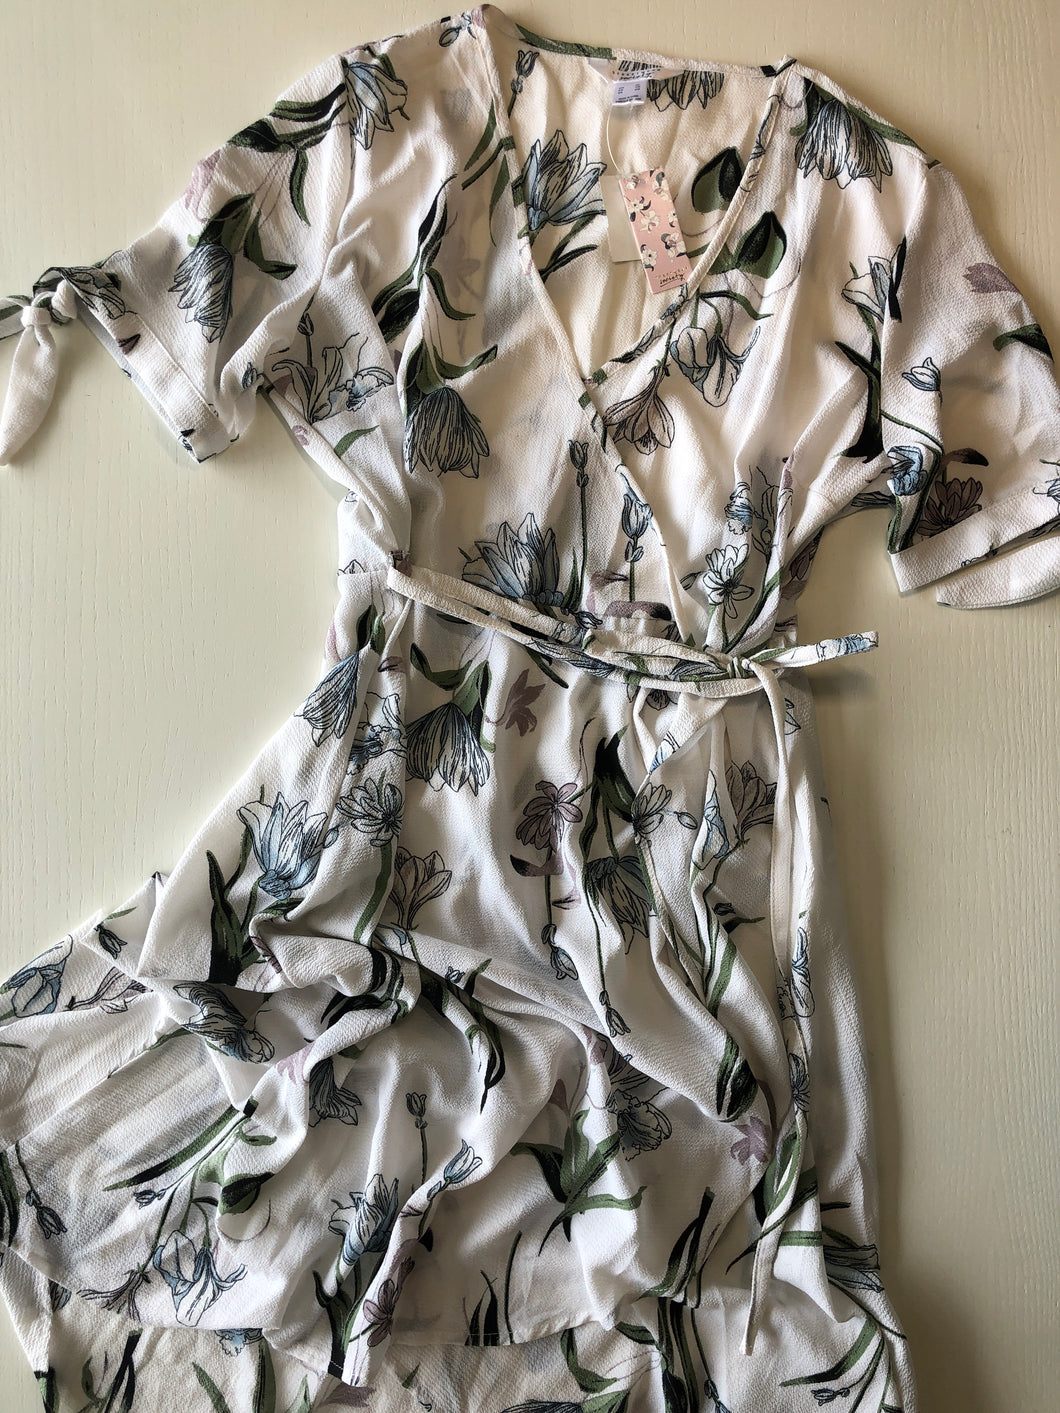 Previously Owned With Tags Women's Streetwear Society Dress Size XL